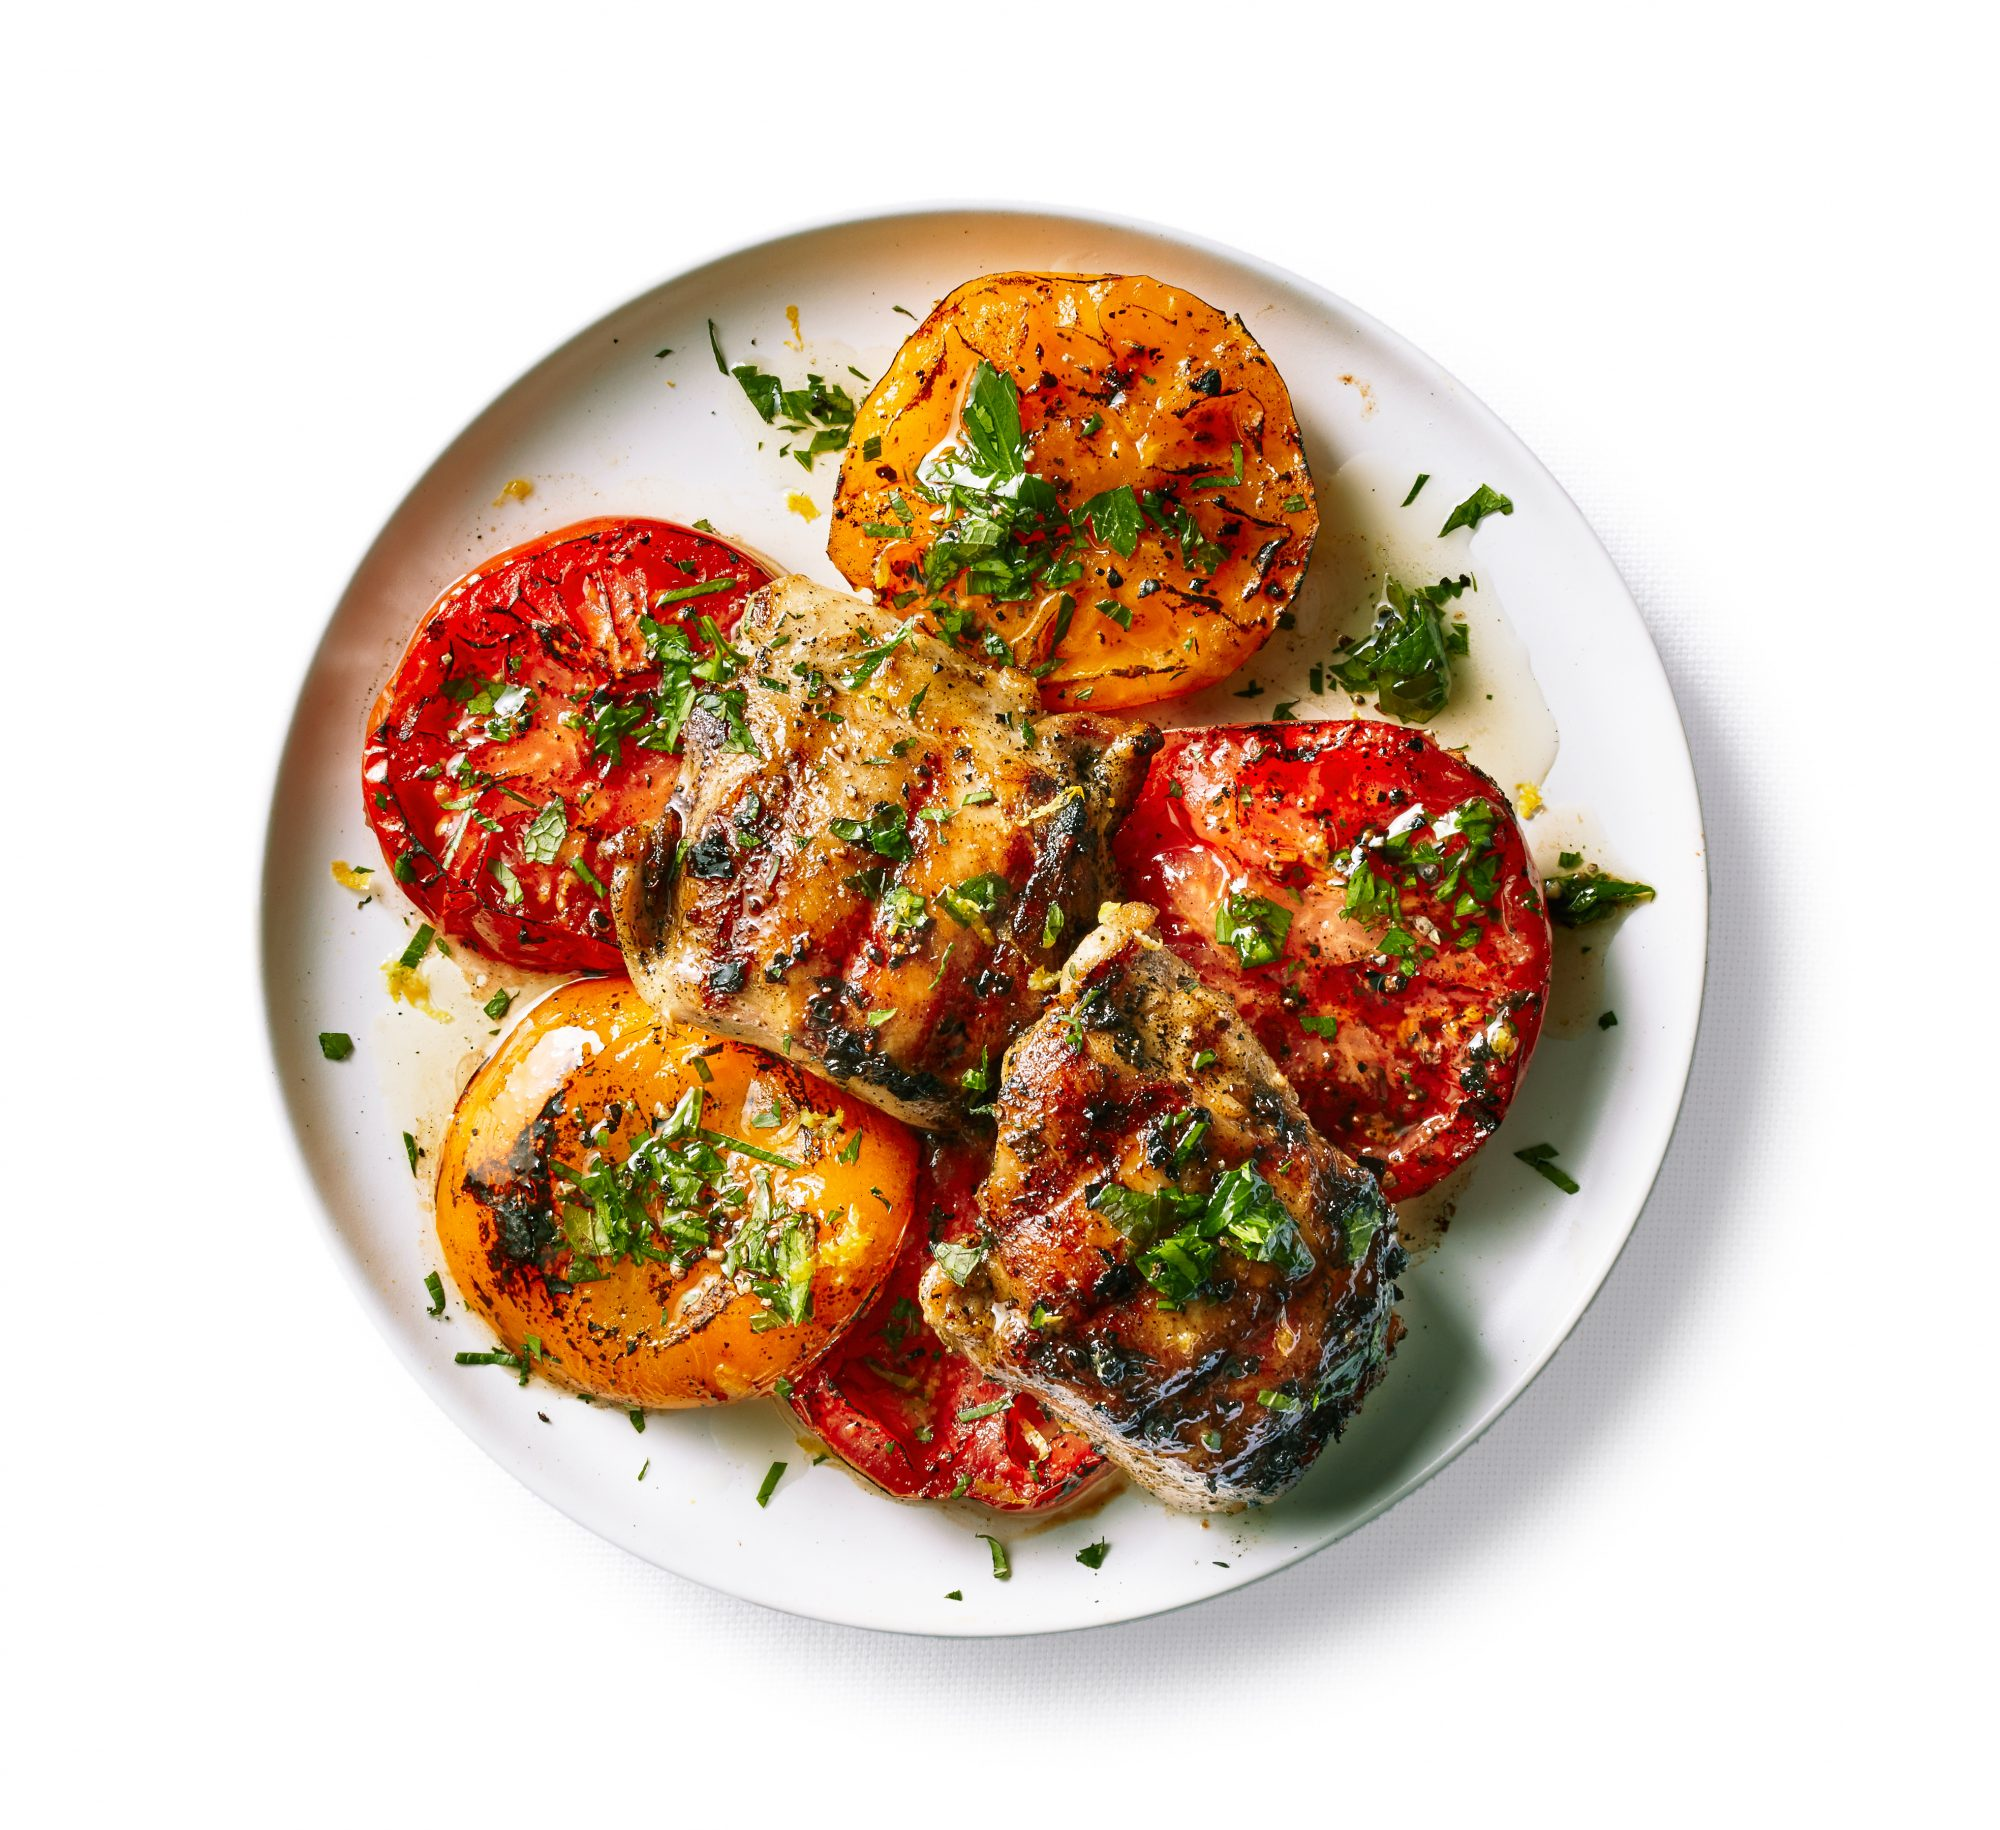 Grilled Chicken with Tomatoes and Herb Oil